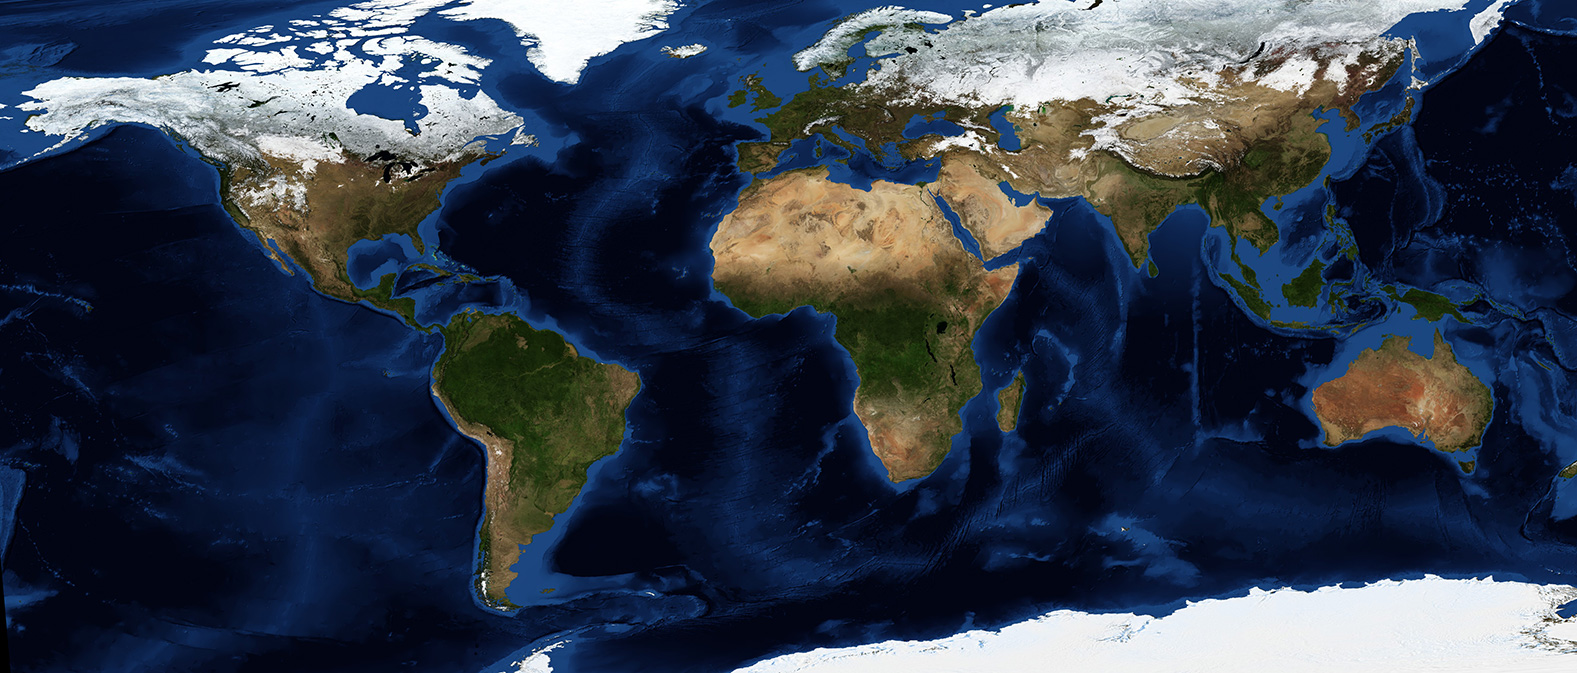 Satellite image of the Earth